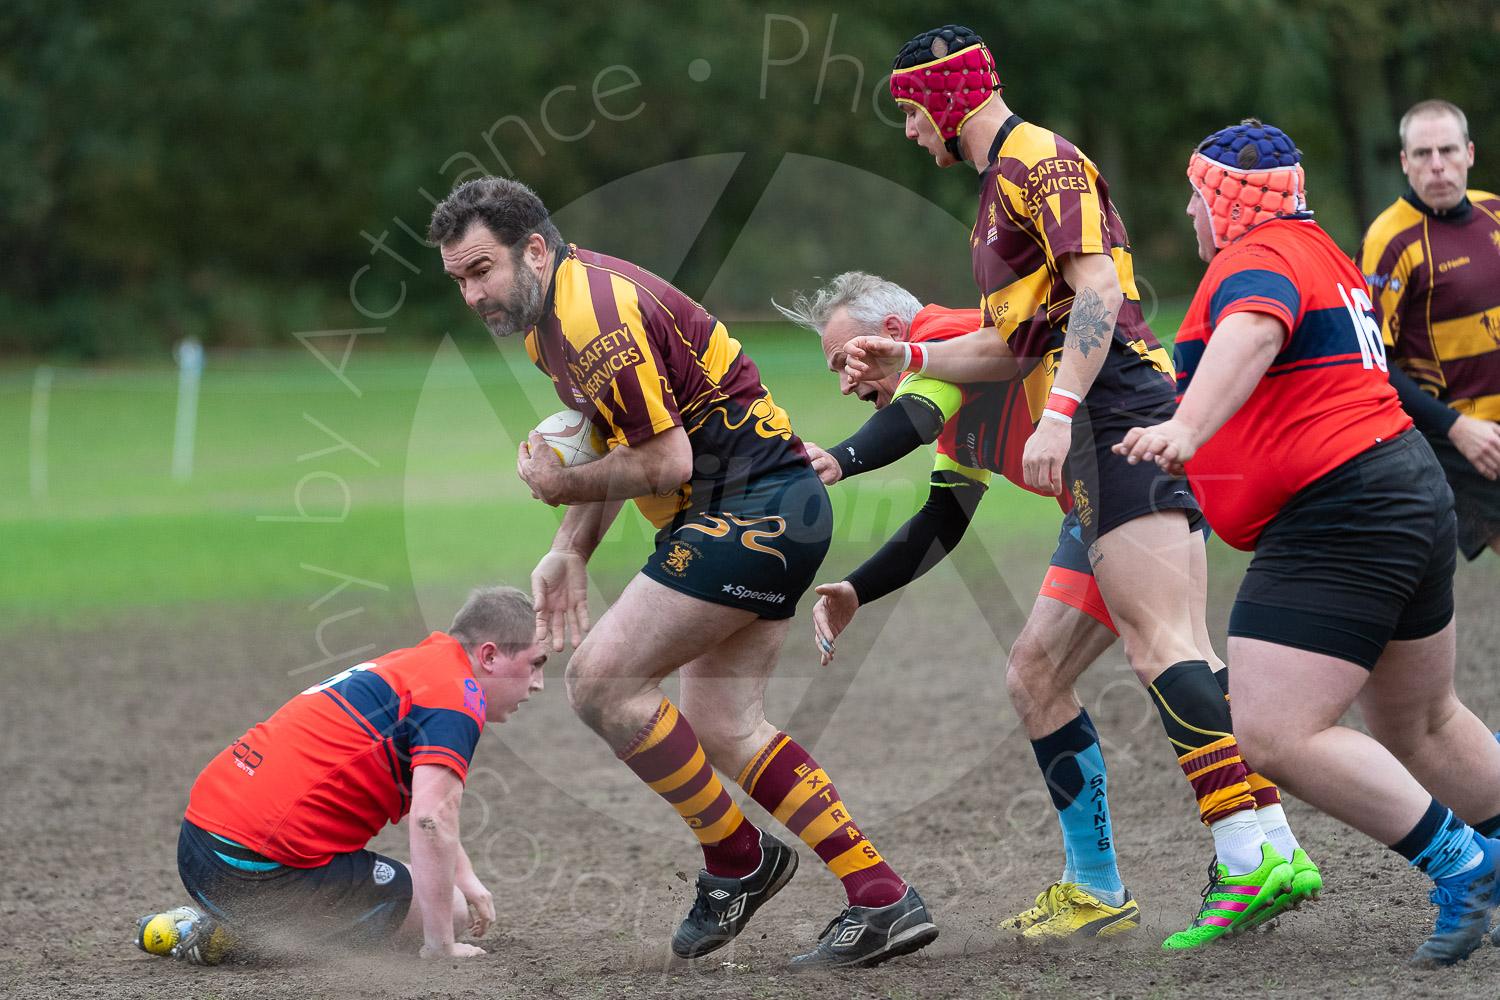 20181027 Amp Extras vs St Neots 2nd XV #2193